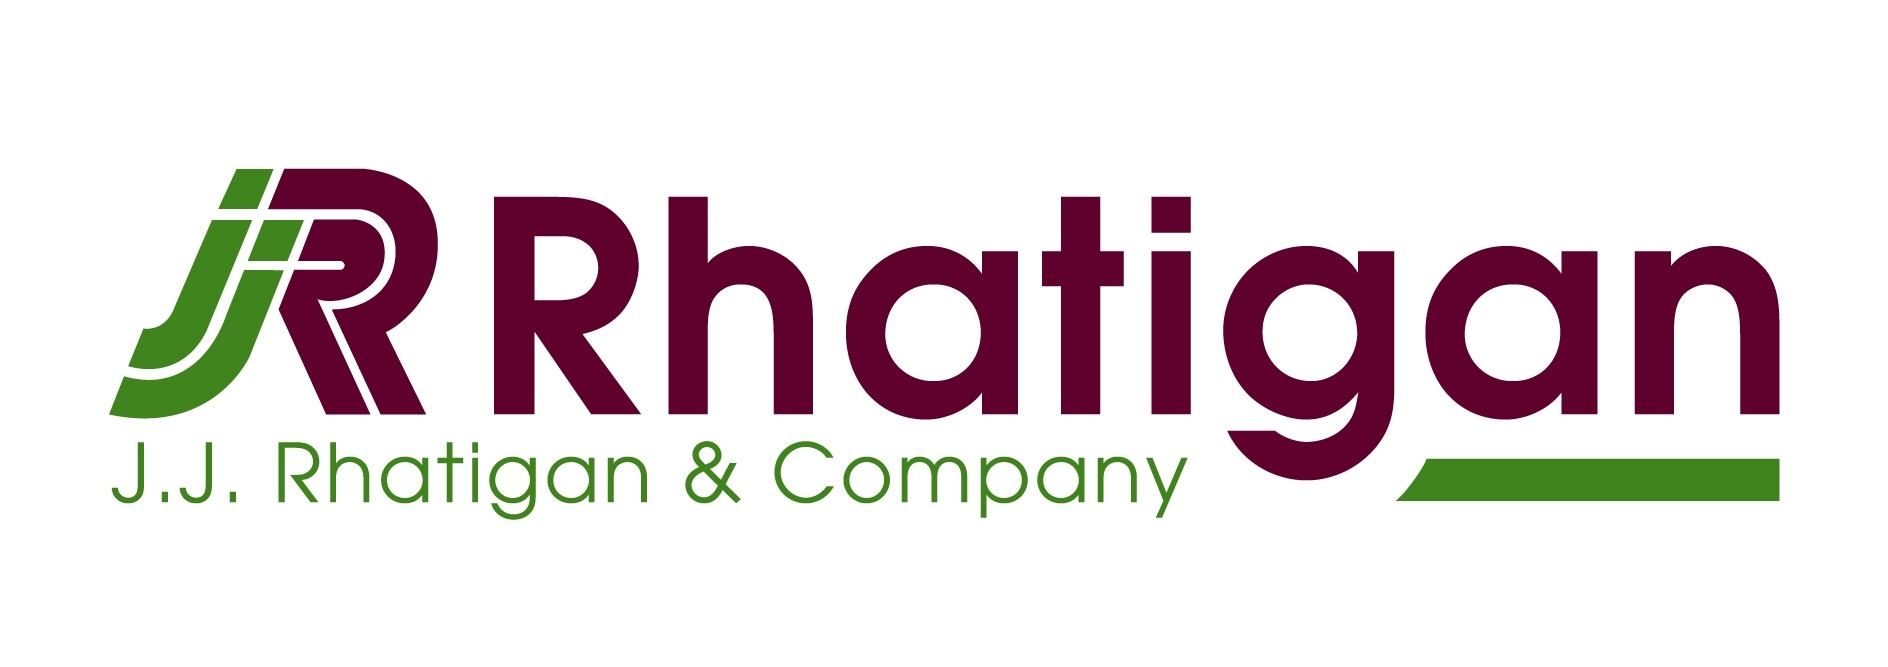 J-J-Rhatigans-New-logo